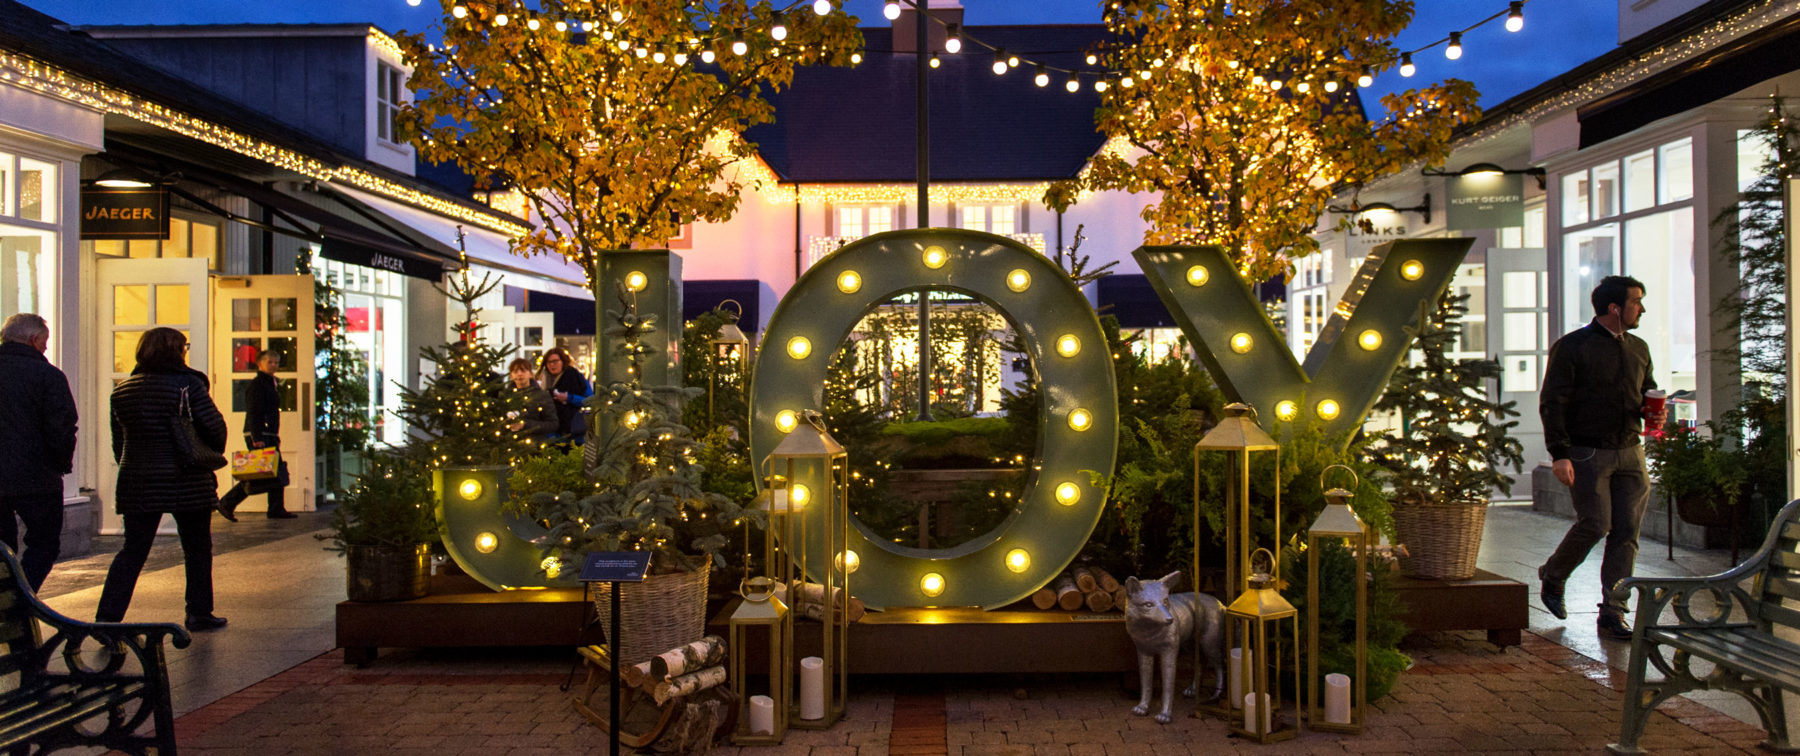 Tick every gift off your Christmas list at Kildare Village